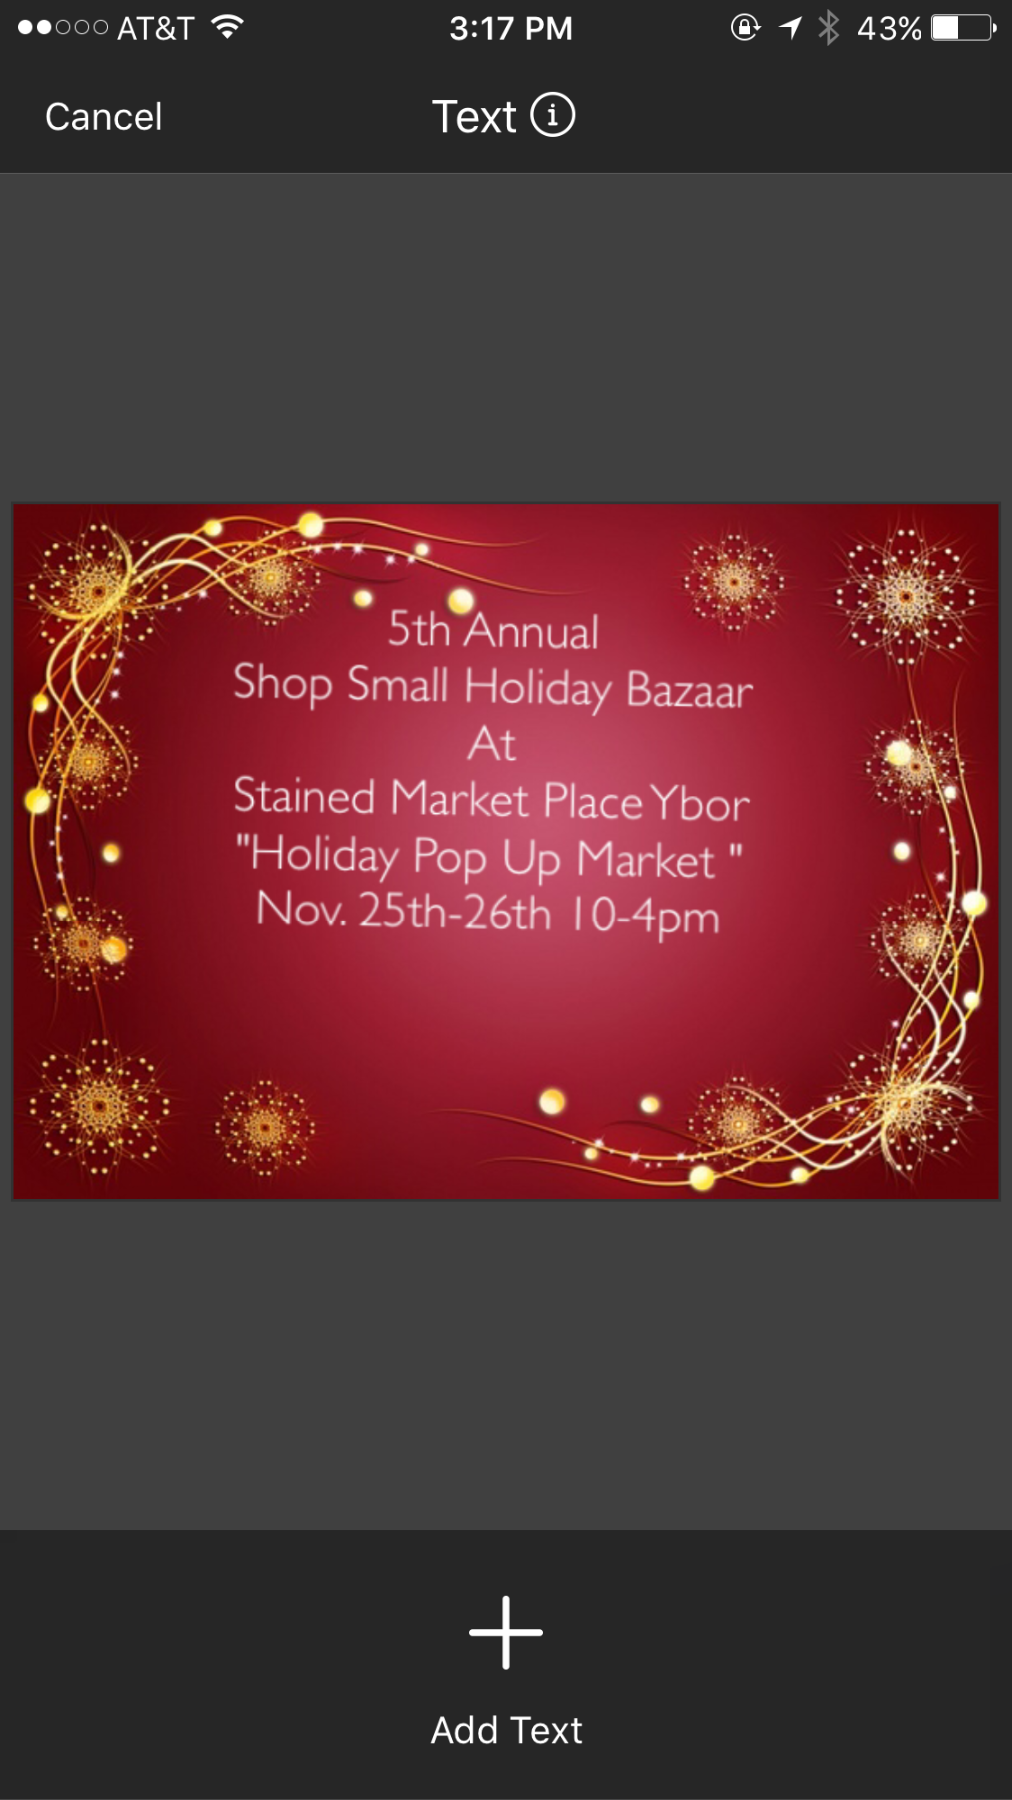 5th Annual: Shop Small Holiday Bazaar